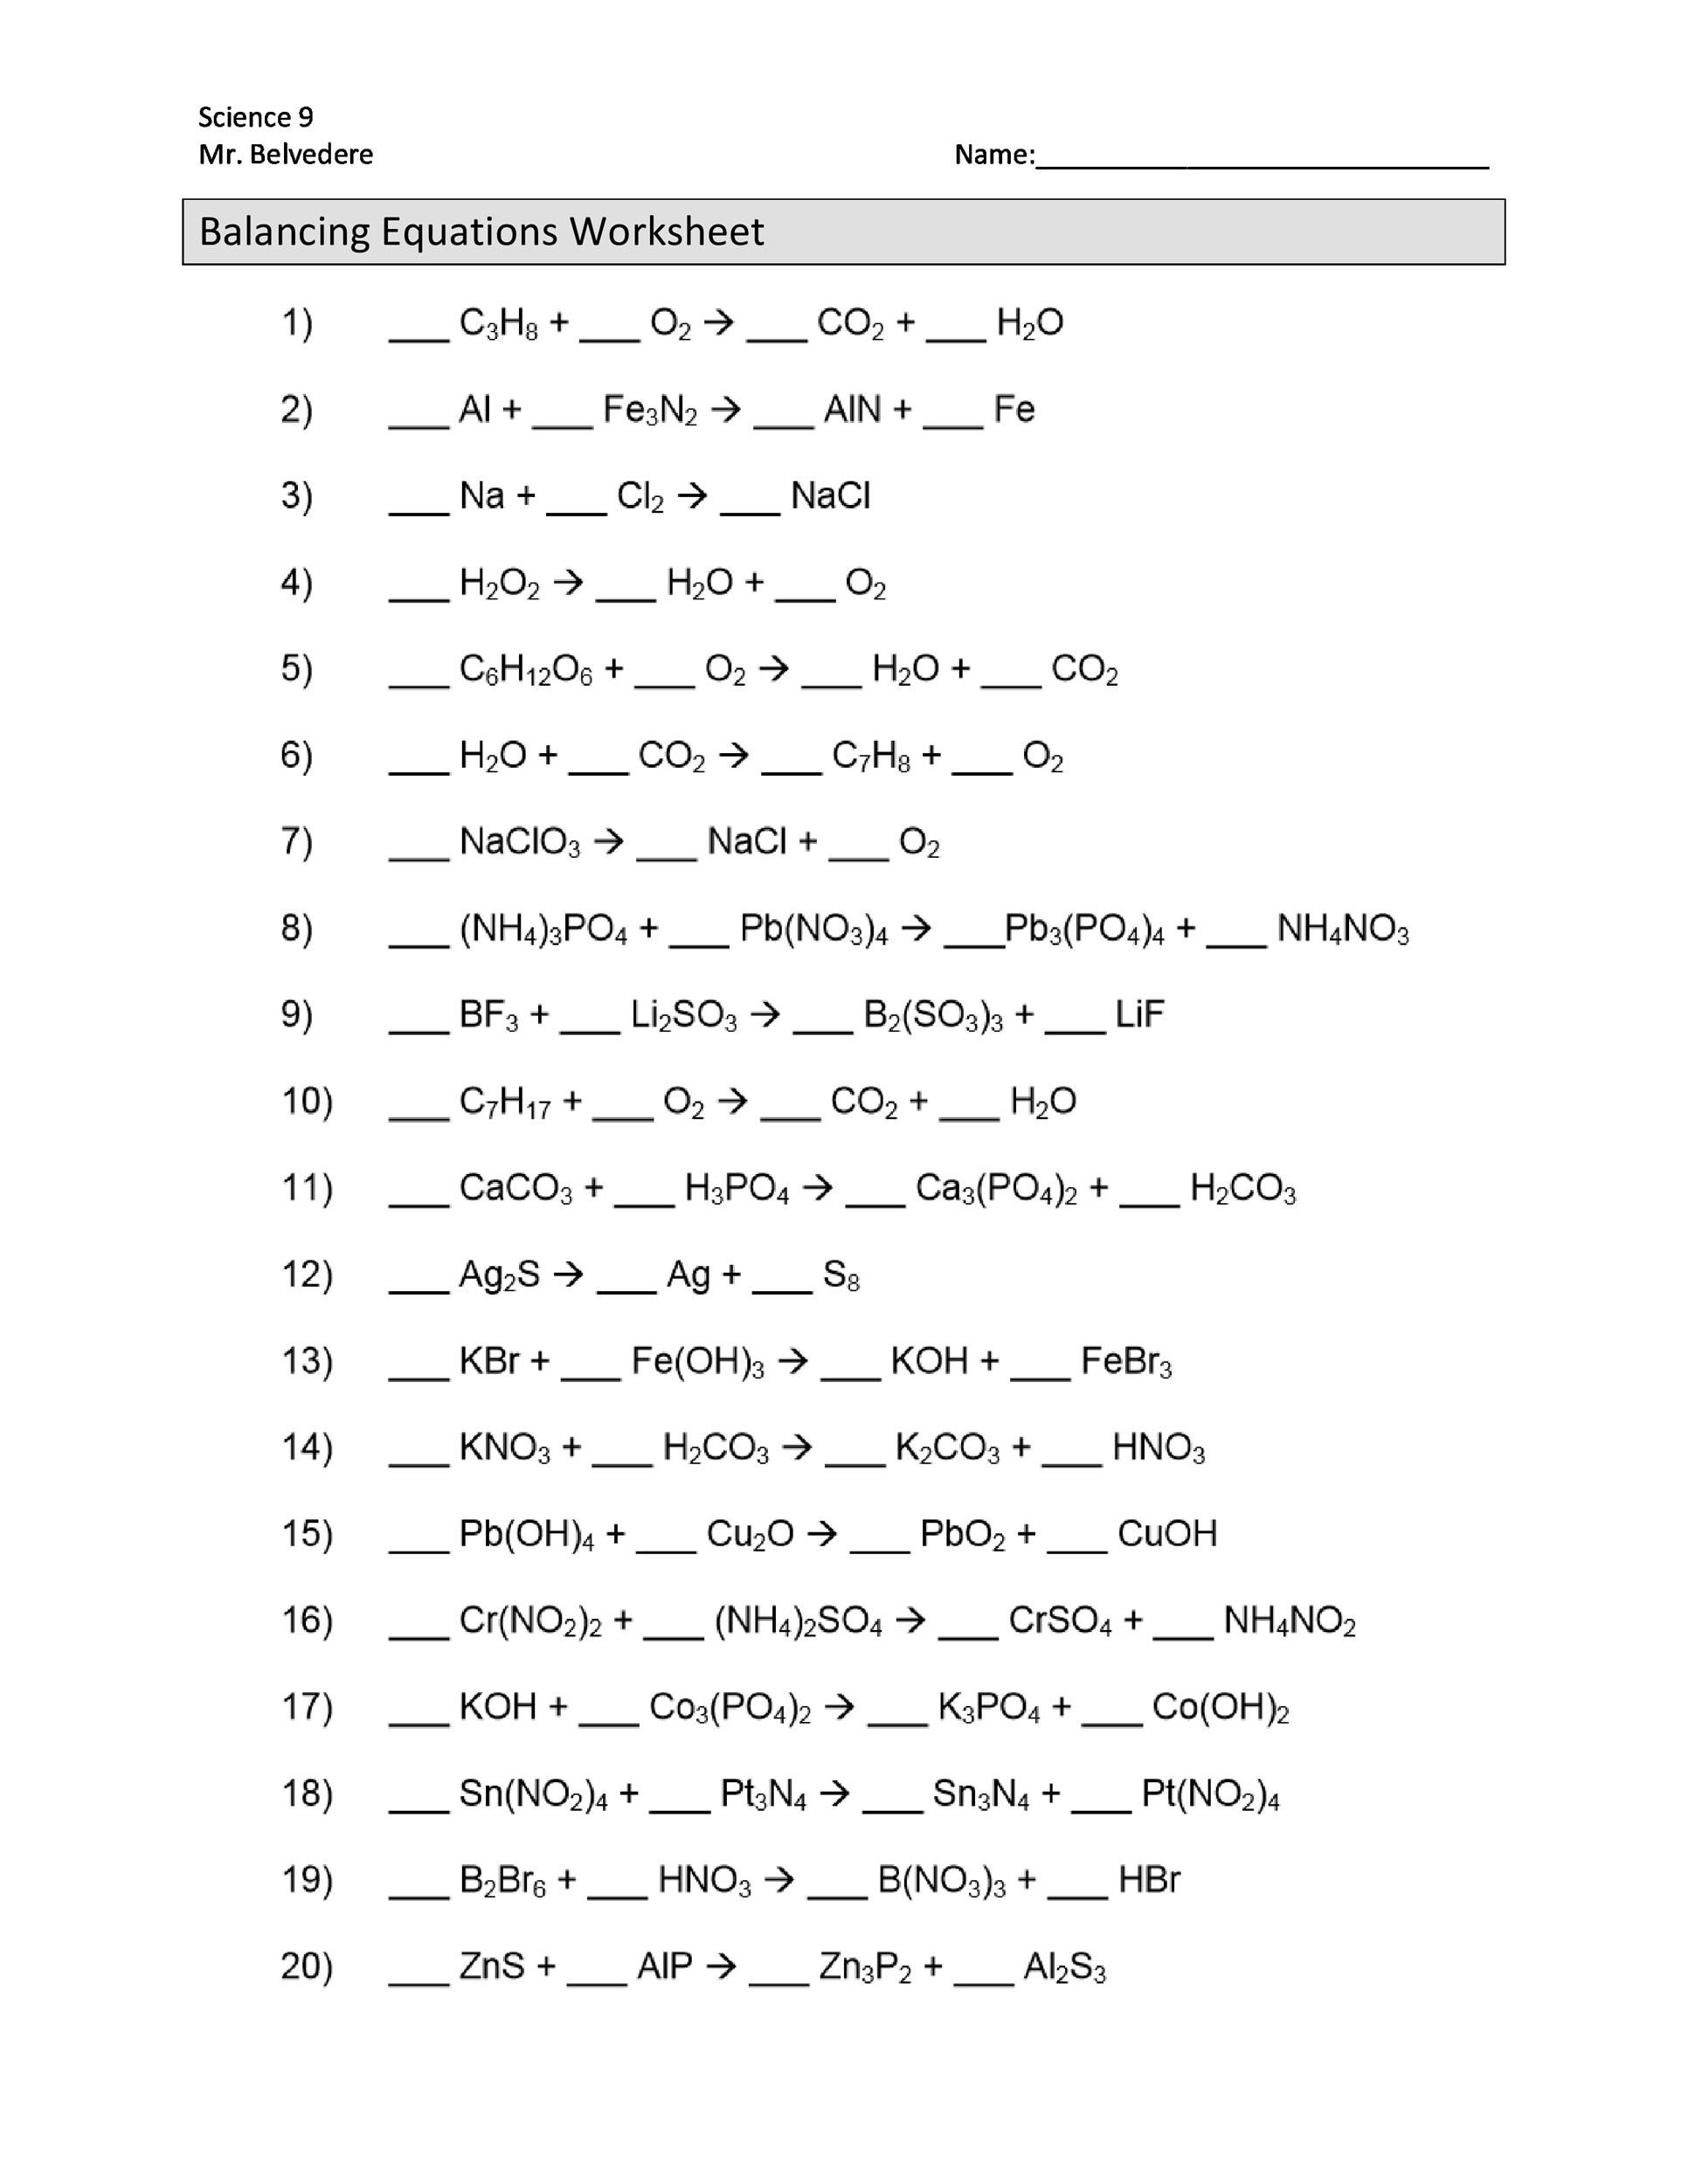 8th Grade Chemistry Worksheets 49 Balancing Chemical Equations Worksheets [with Answers]